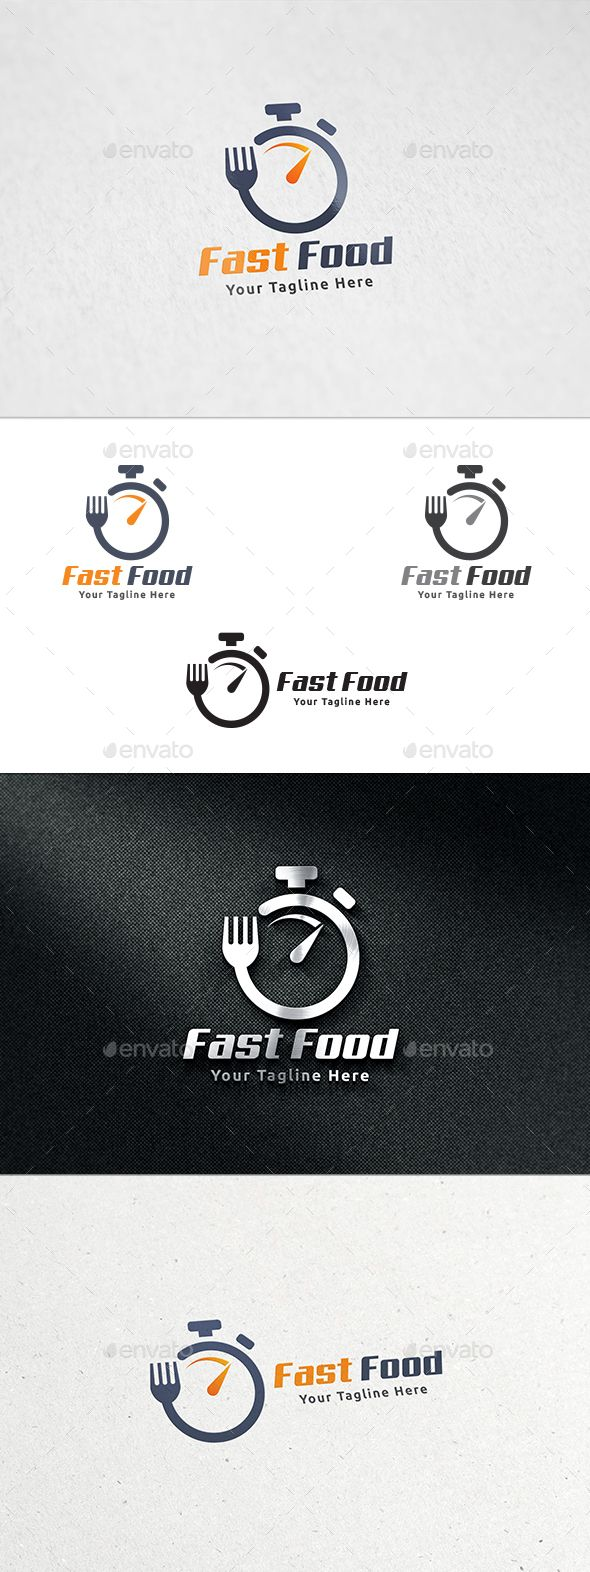 Fast Food Logo Design Template Vector #logotype Download it here: http://graphicriver.net/item/fast-food-logo/13024811?s_rank=206?ref=nexion                                                                                                                                                                                 More